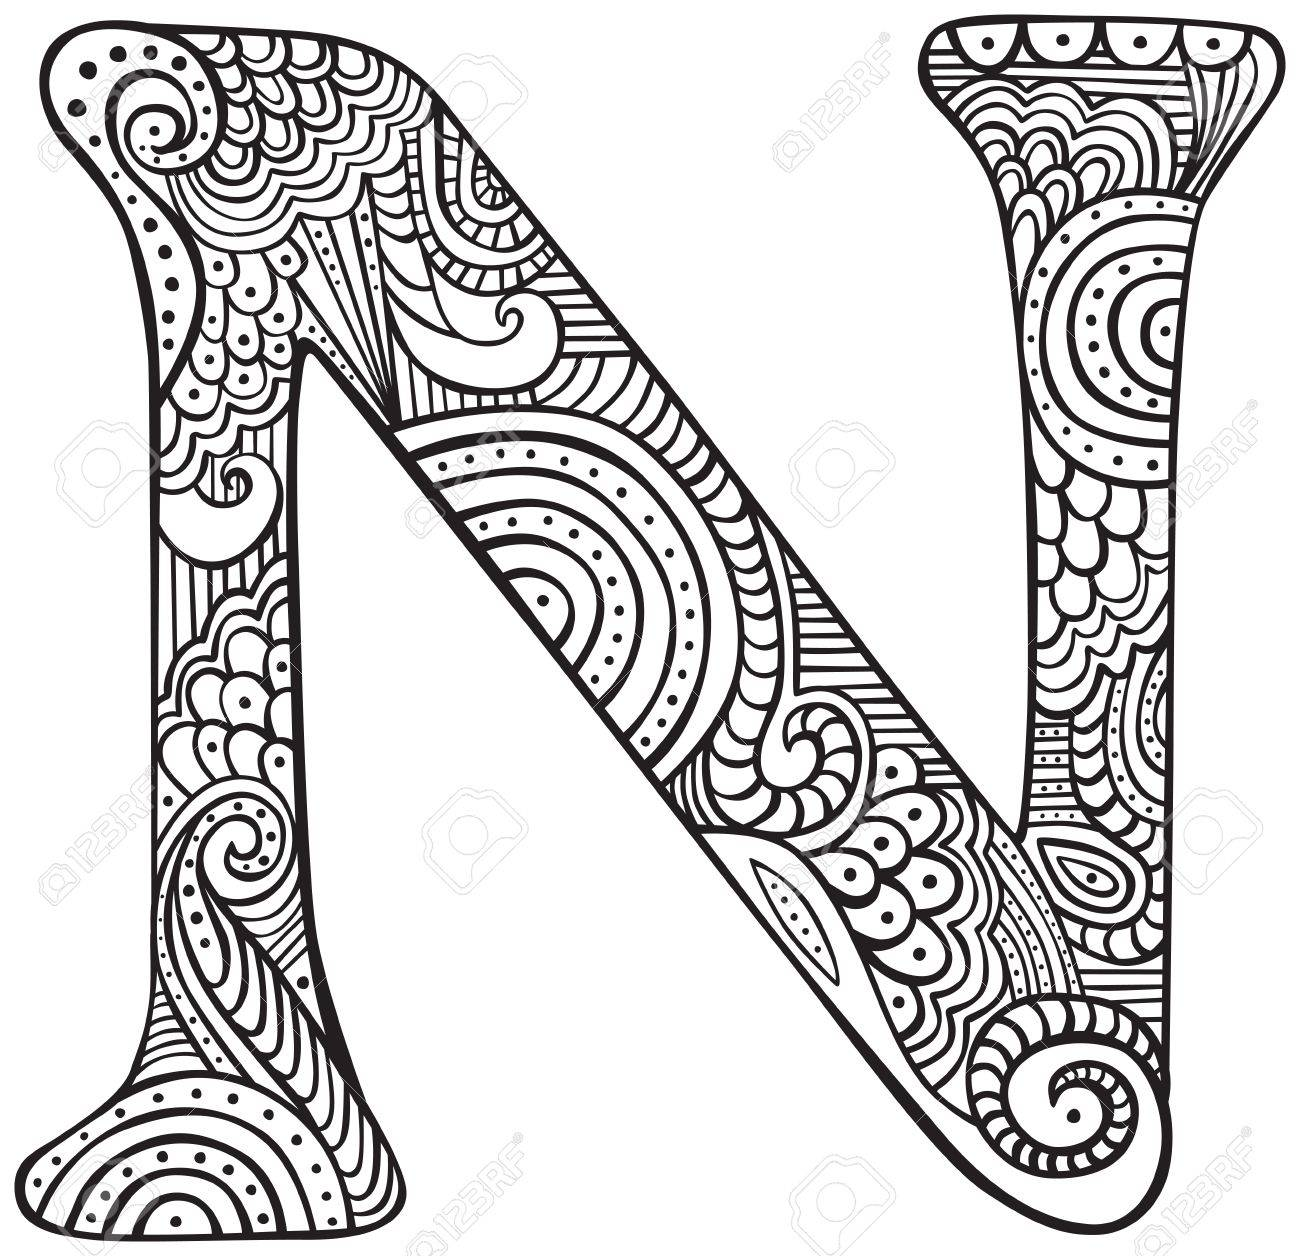 Hand Drawn Capital Letter N In Black Coloring Sheet For Adults